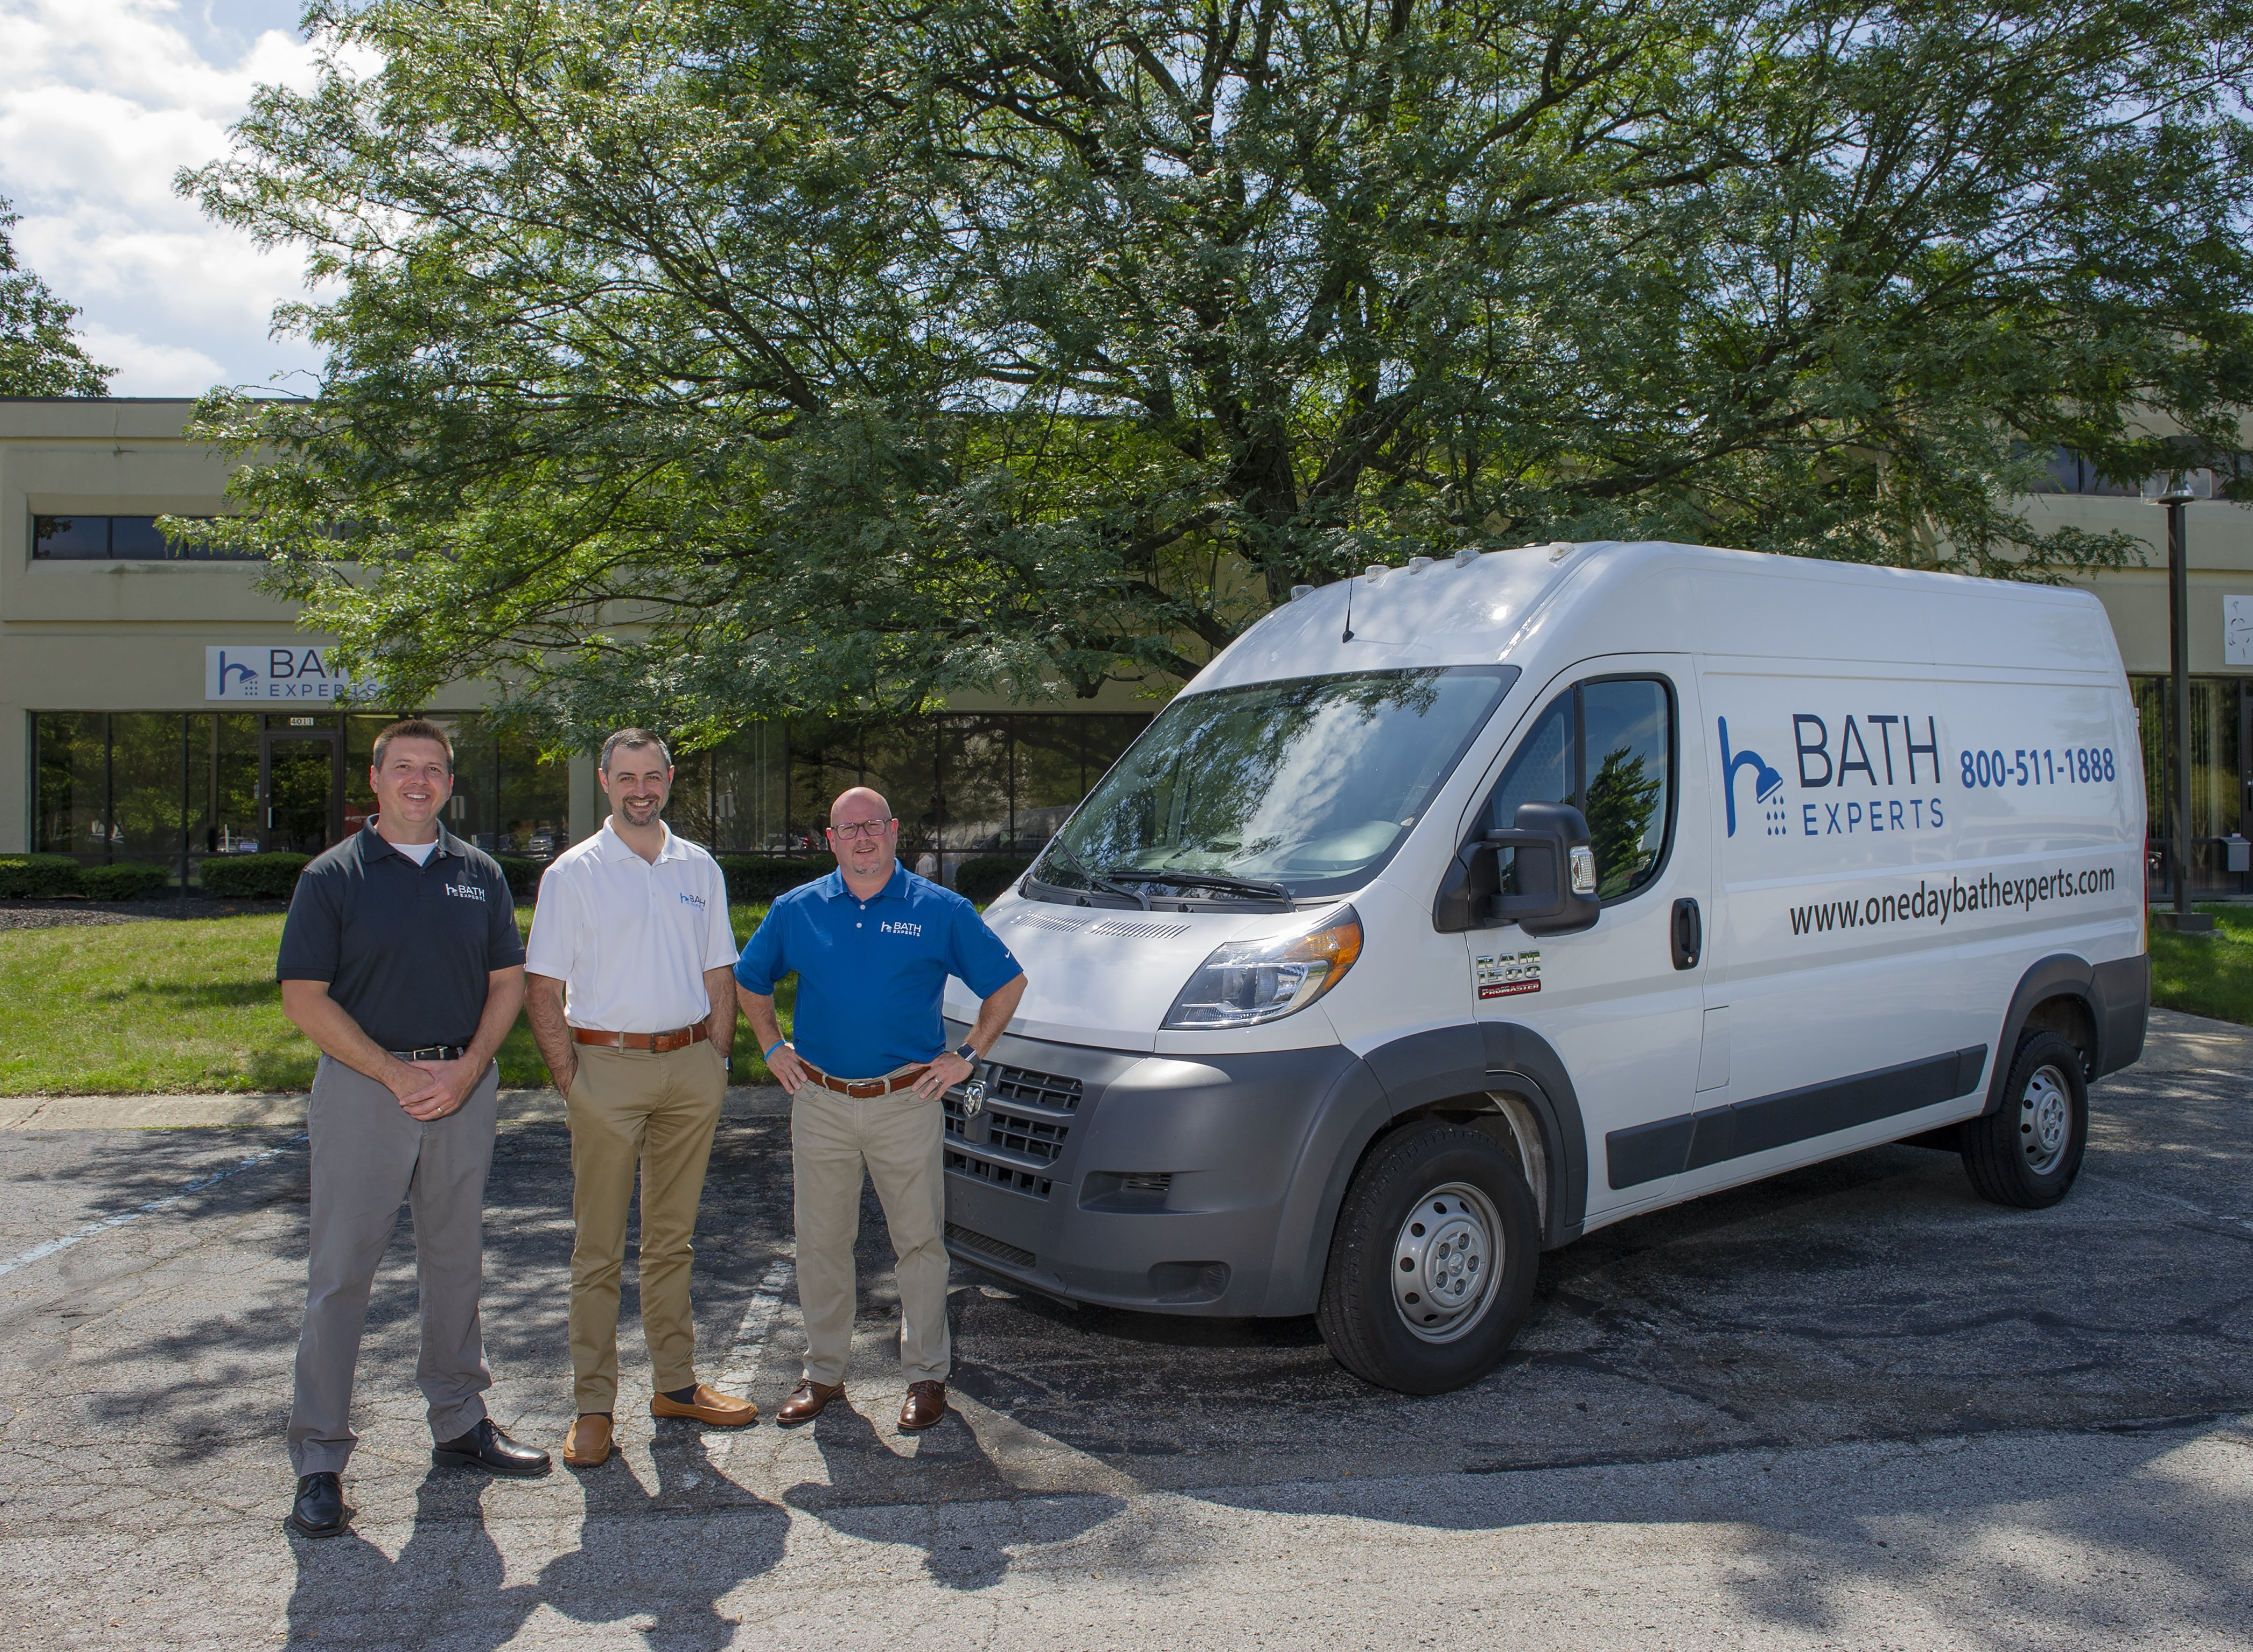 Bath Experts Introduces Tub/Shower Renovations in Indianapolis In As Little As One Day